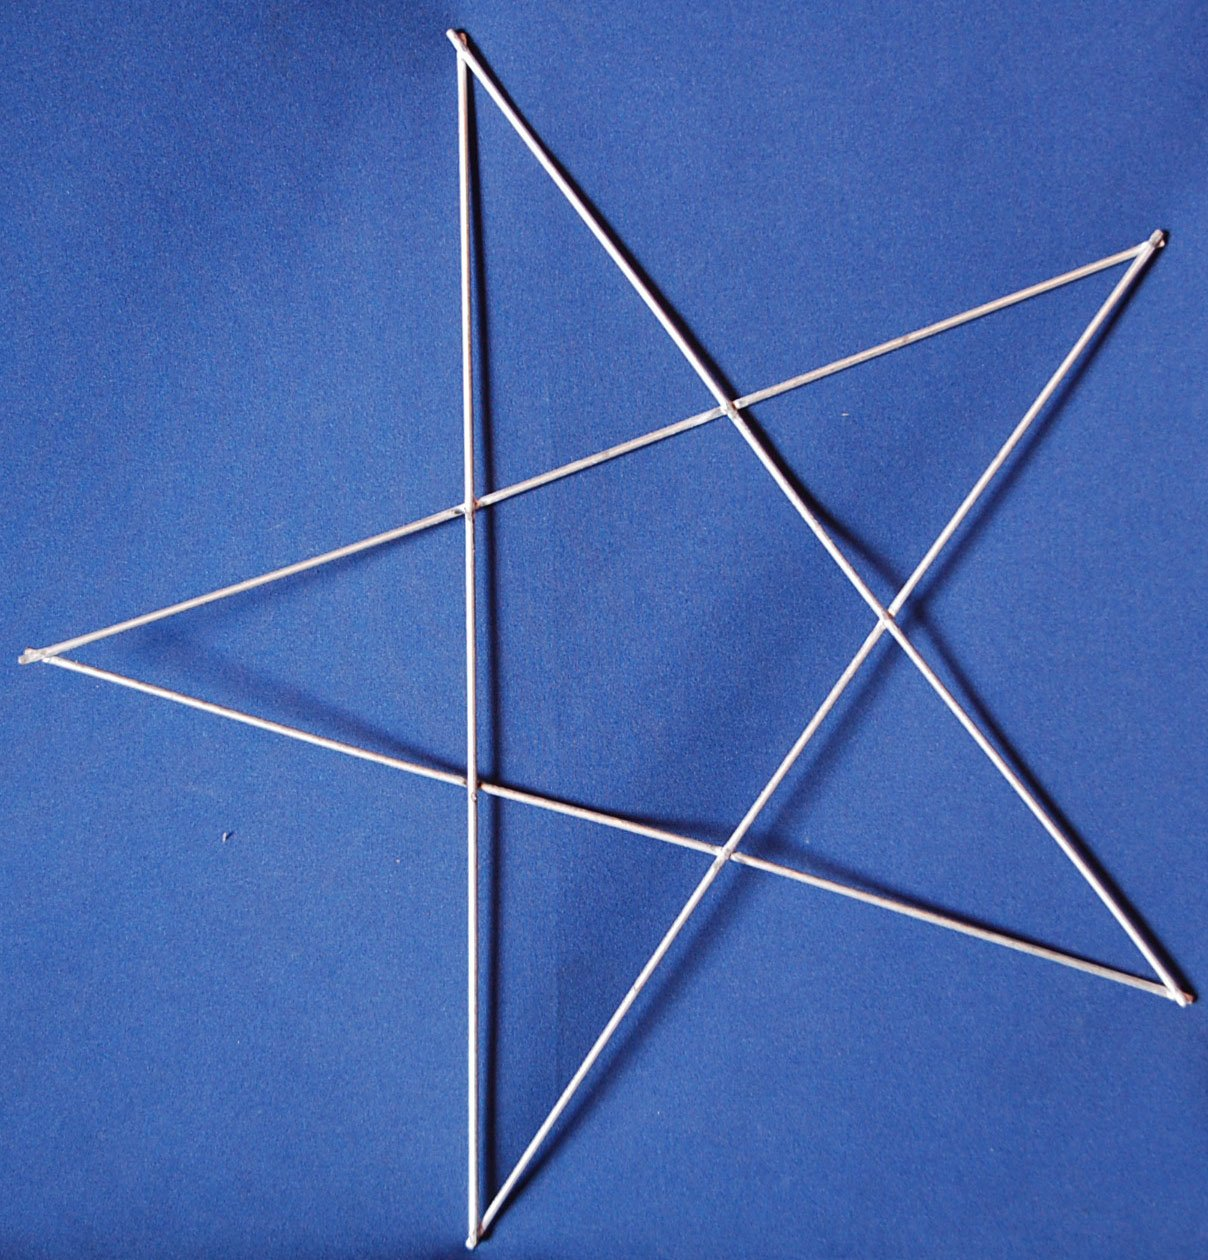 Dorable Wire Snowflake Forms Inspiration Electrical And